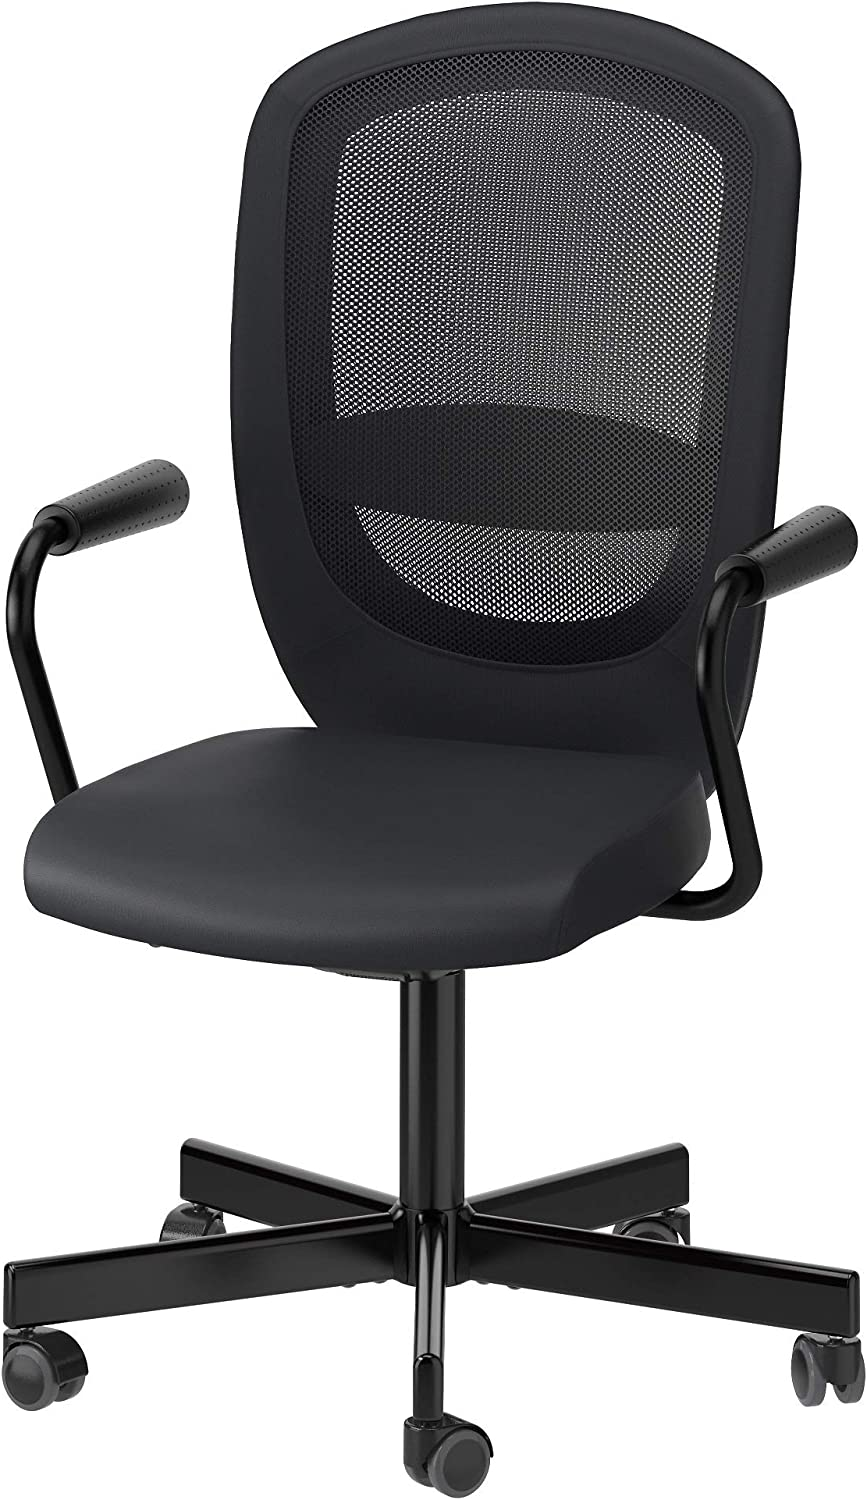 IKEA FlintanNominell Swivel Chair with Armrests Black